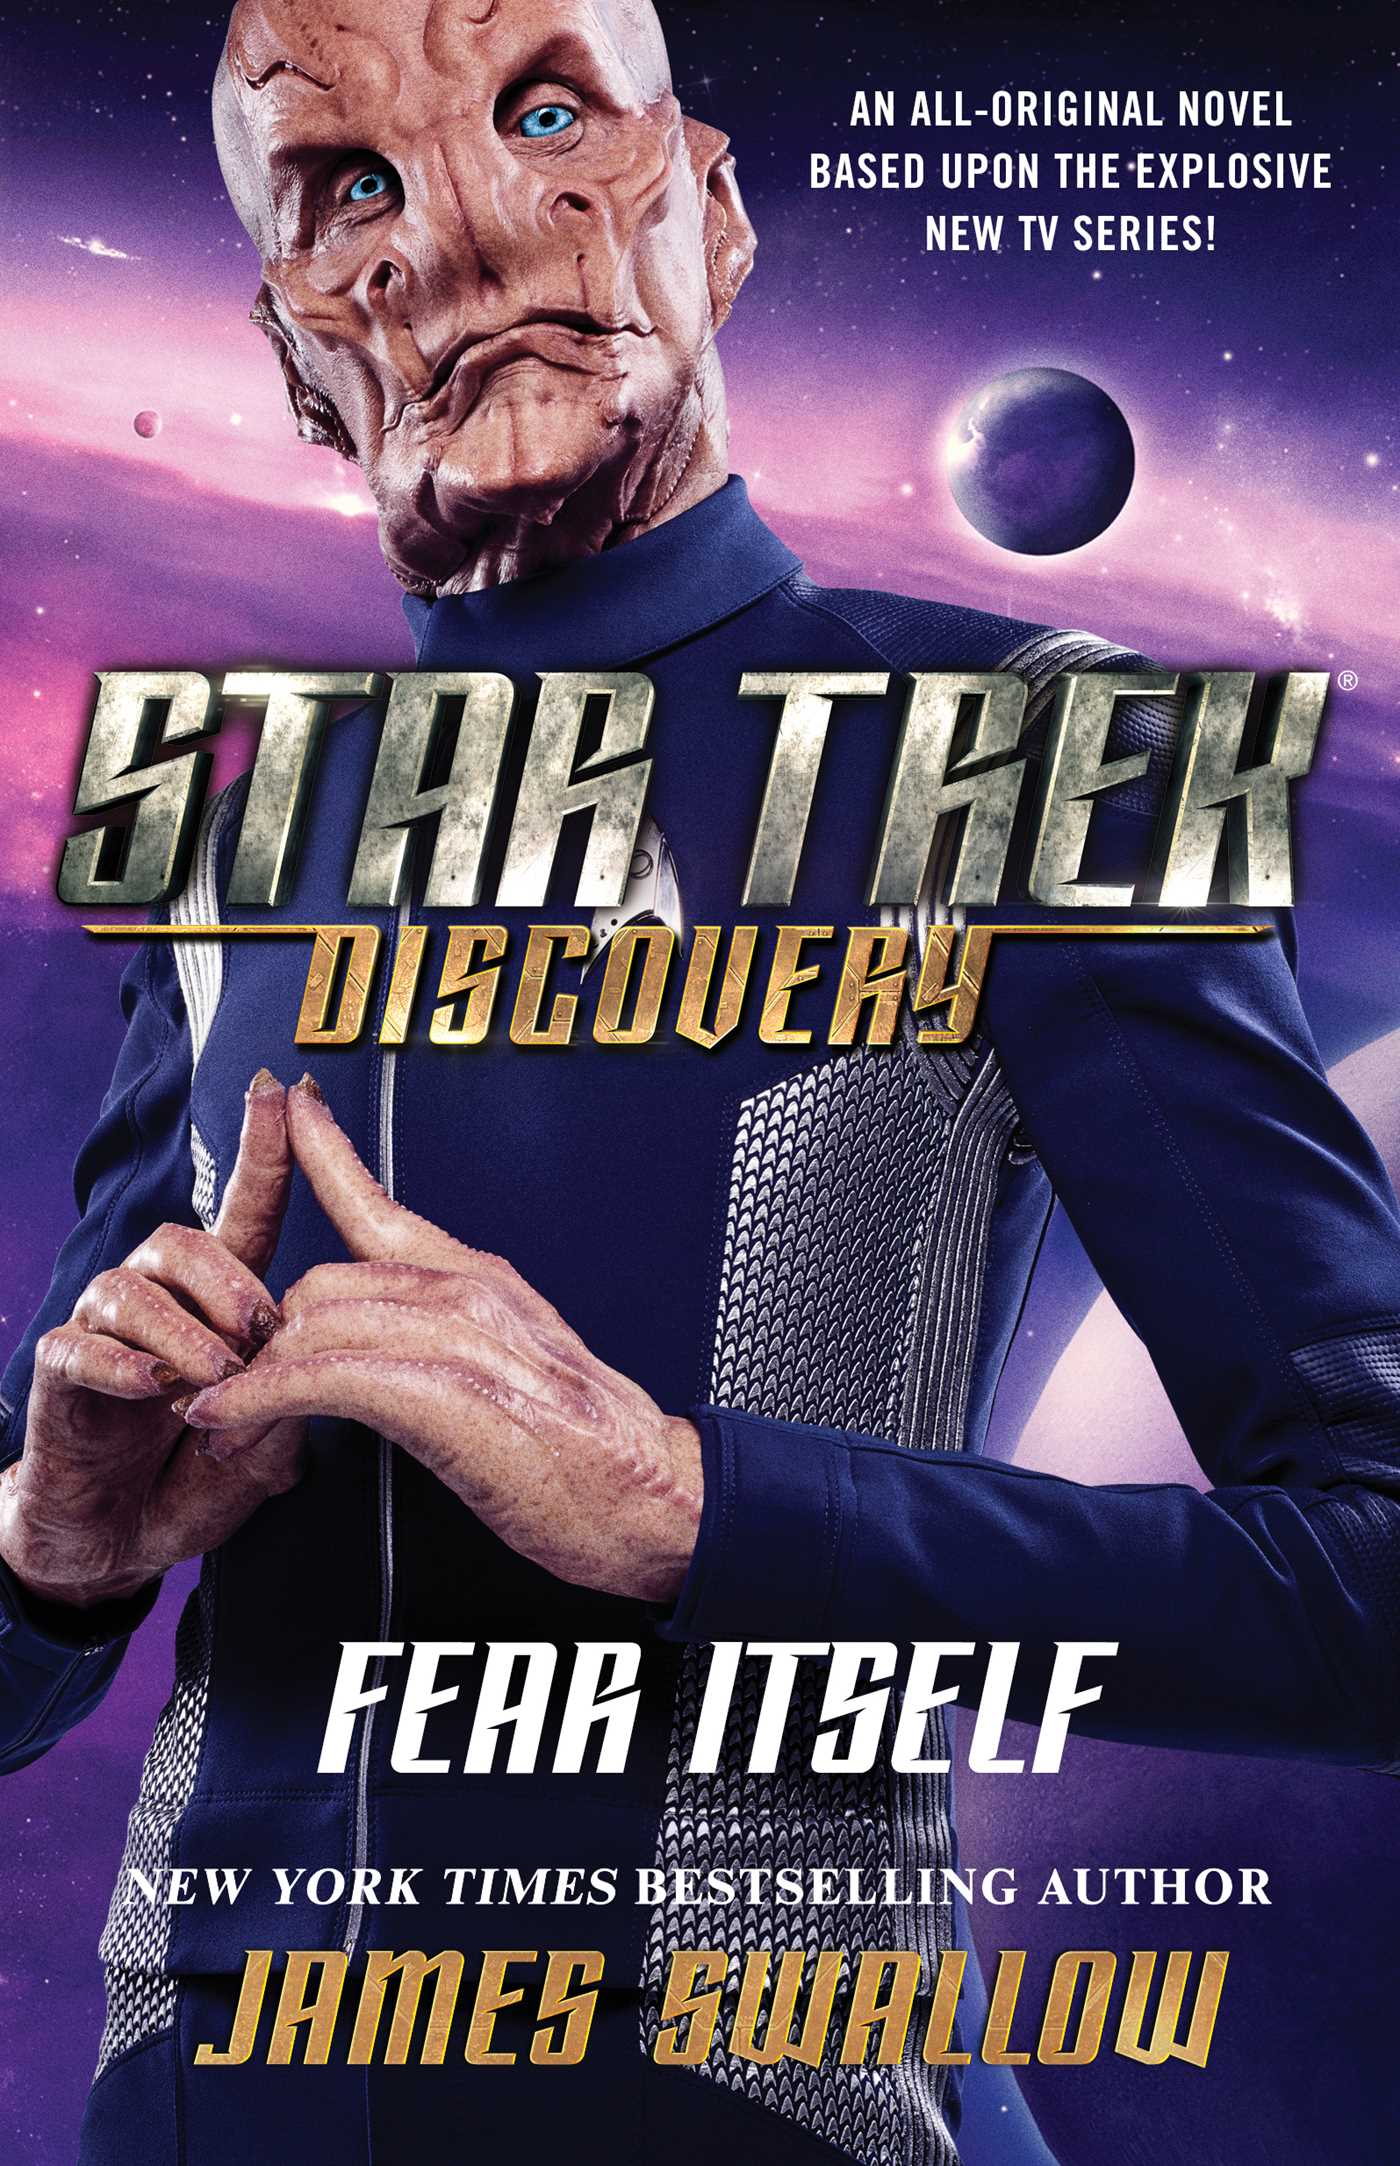 Star trek discovery fear itself 9781501166594 hr